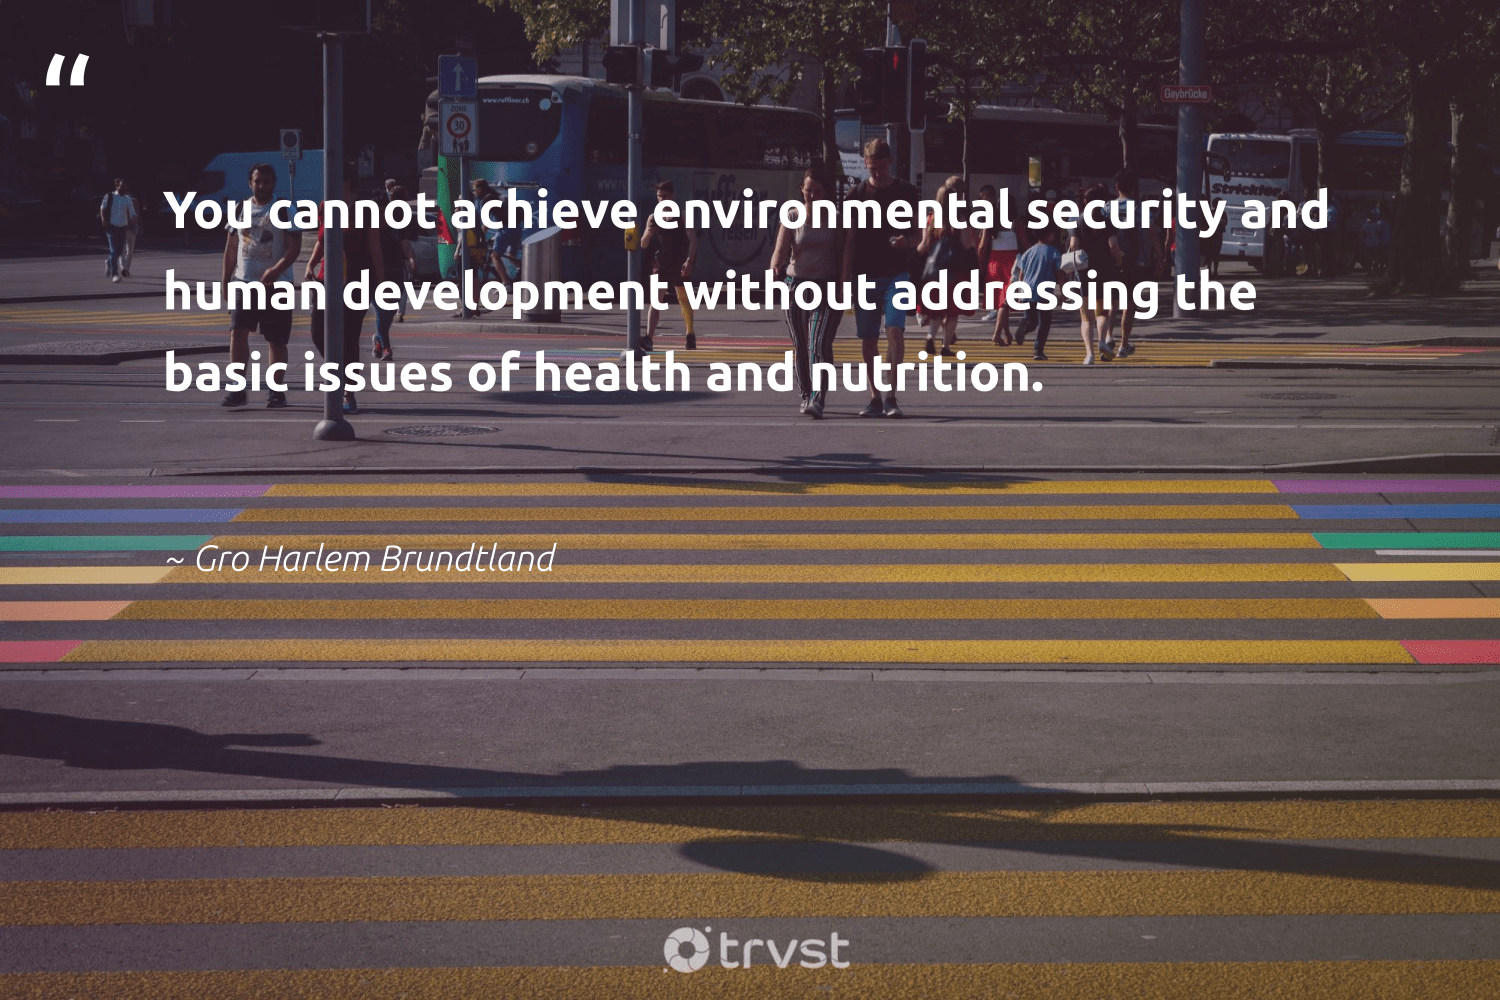 """You cannot achieve environmental security and human development without addressing the basic issues of health and nutrition.""  - Gro Harlem Brundtland #trvst #quotes #environmental #health #nutrition #development #healthylife #socialgood #mindset #planetearthfirst #wellbeing #makeadifference"